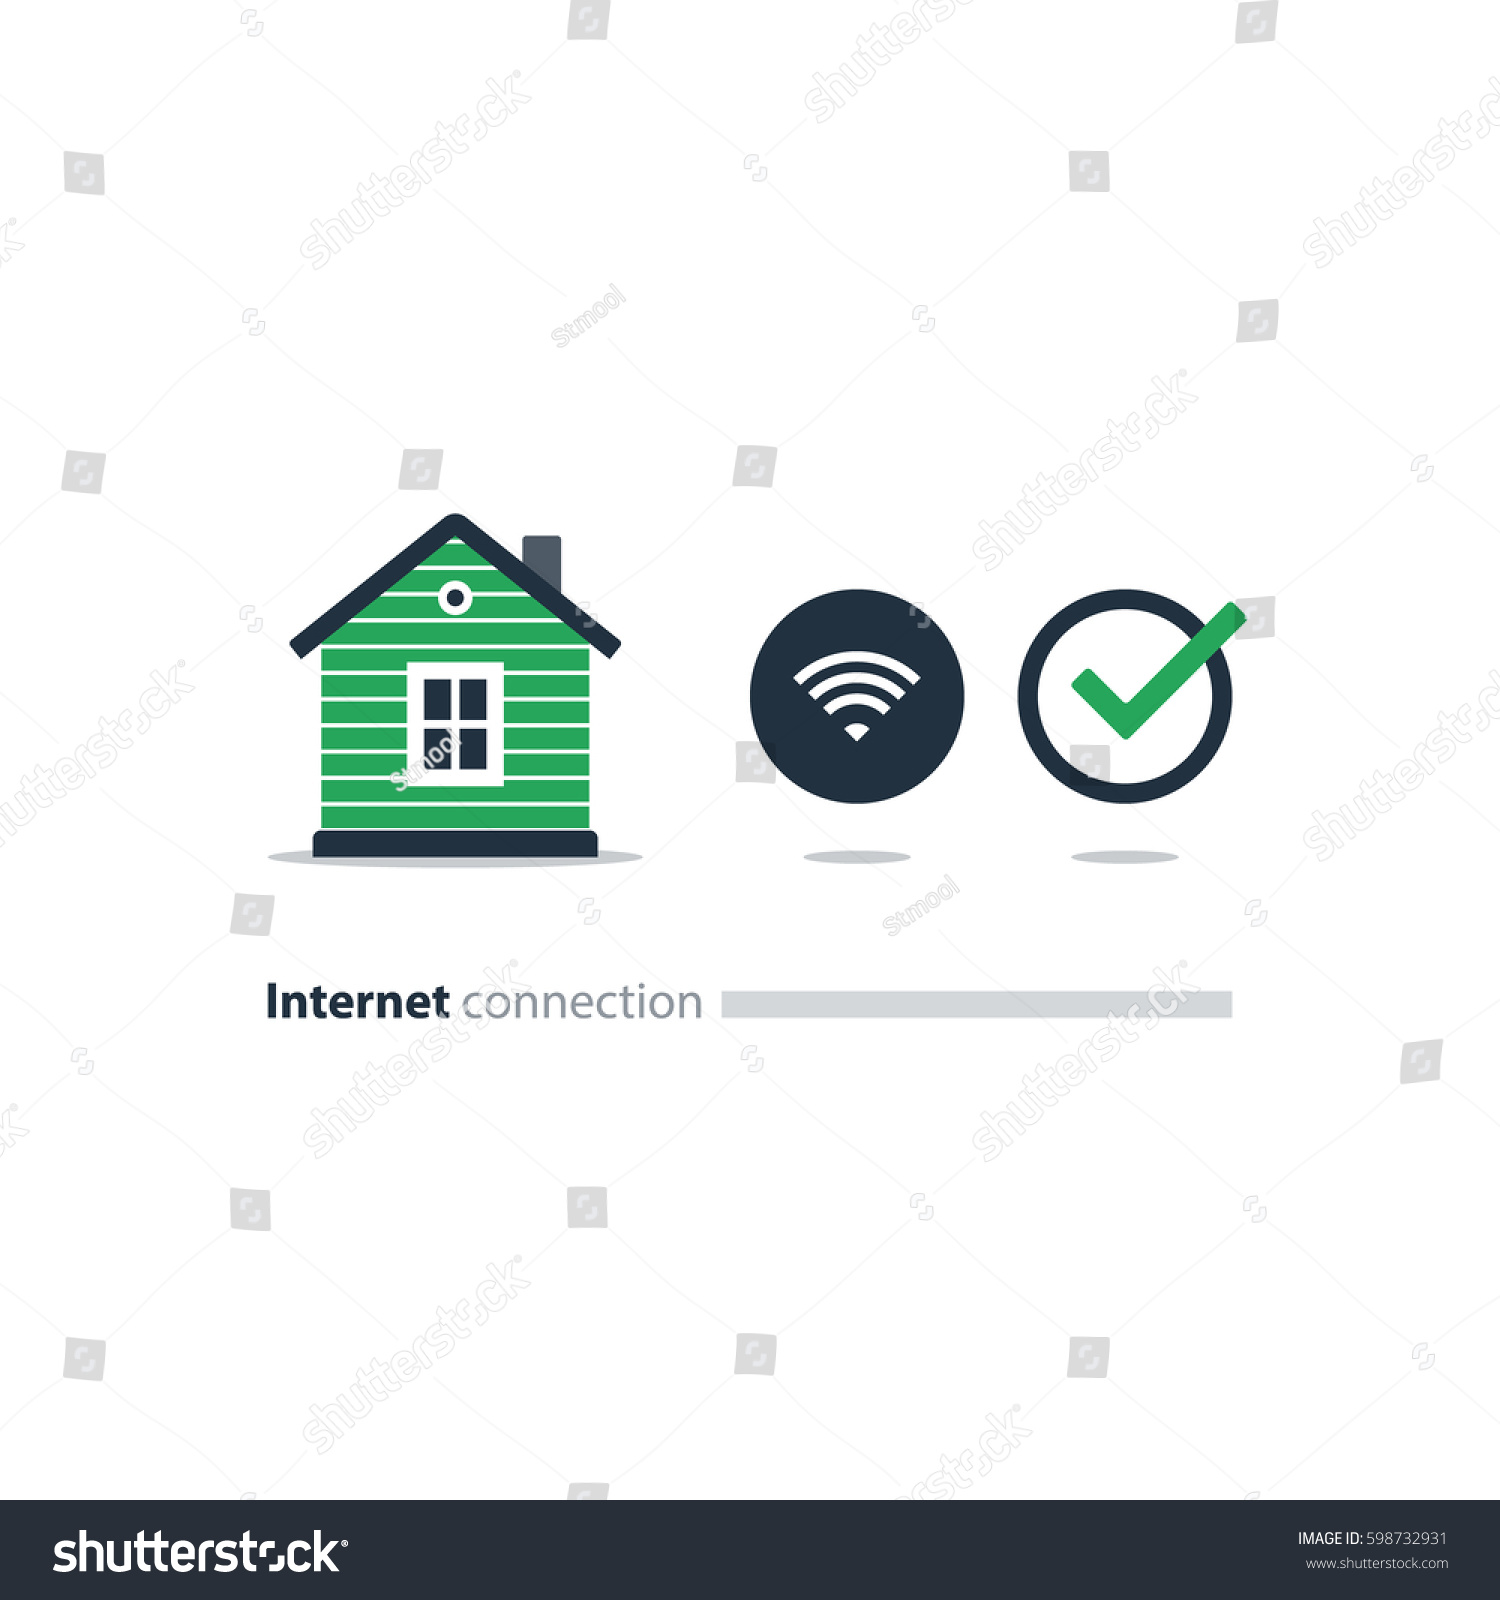 Home Wi Fi Connection Concept Wireless Internet Stock Photo (Photo ...